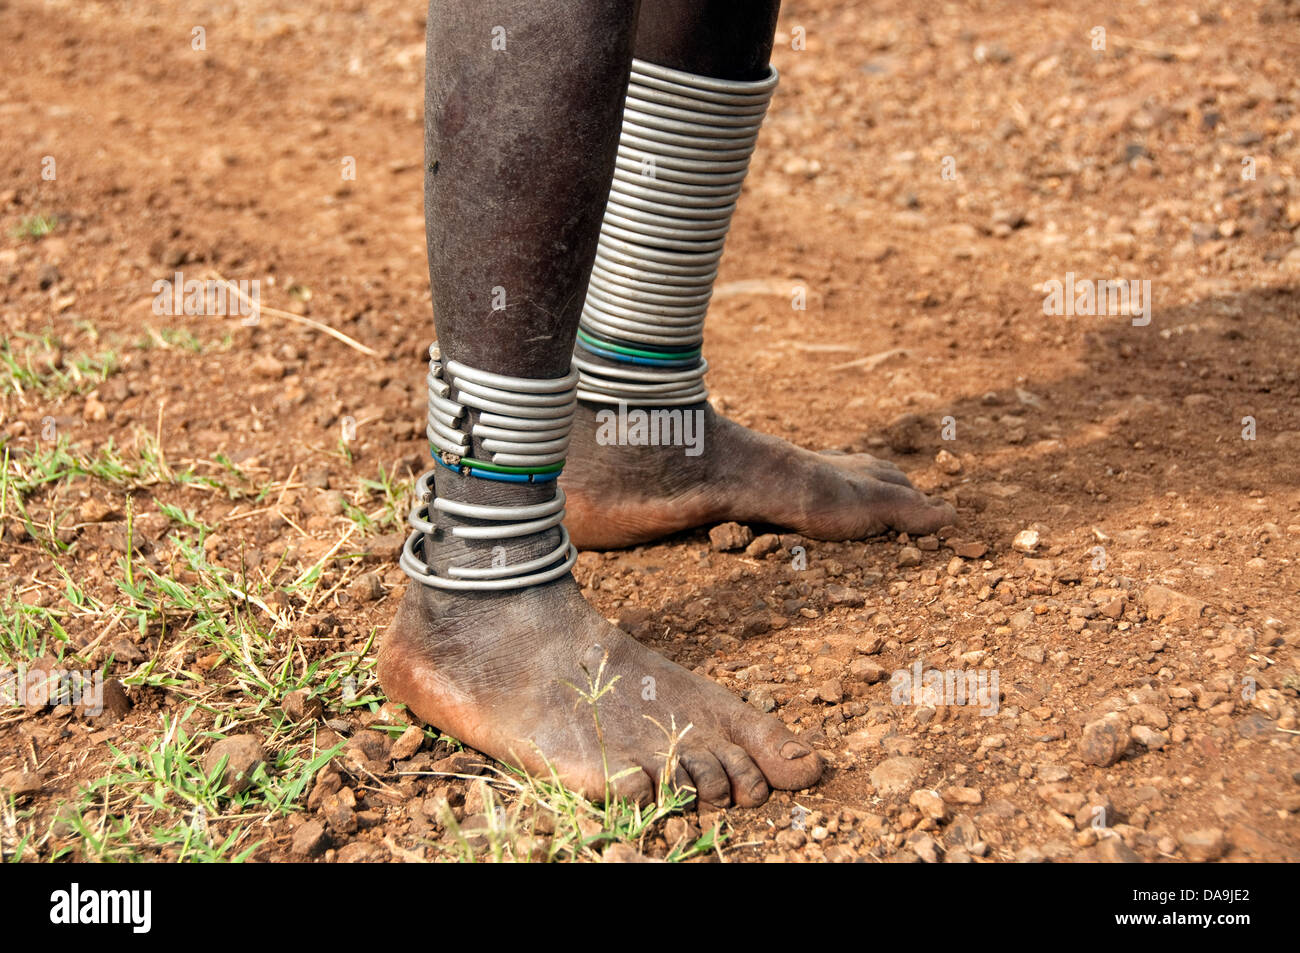 Legs of a Suri (Surma) woman with meal bracelets, Ethiopia - Stock Image